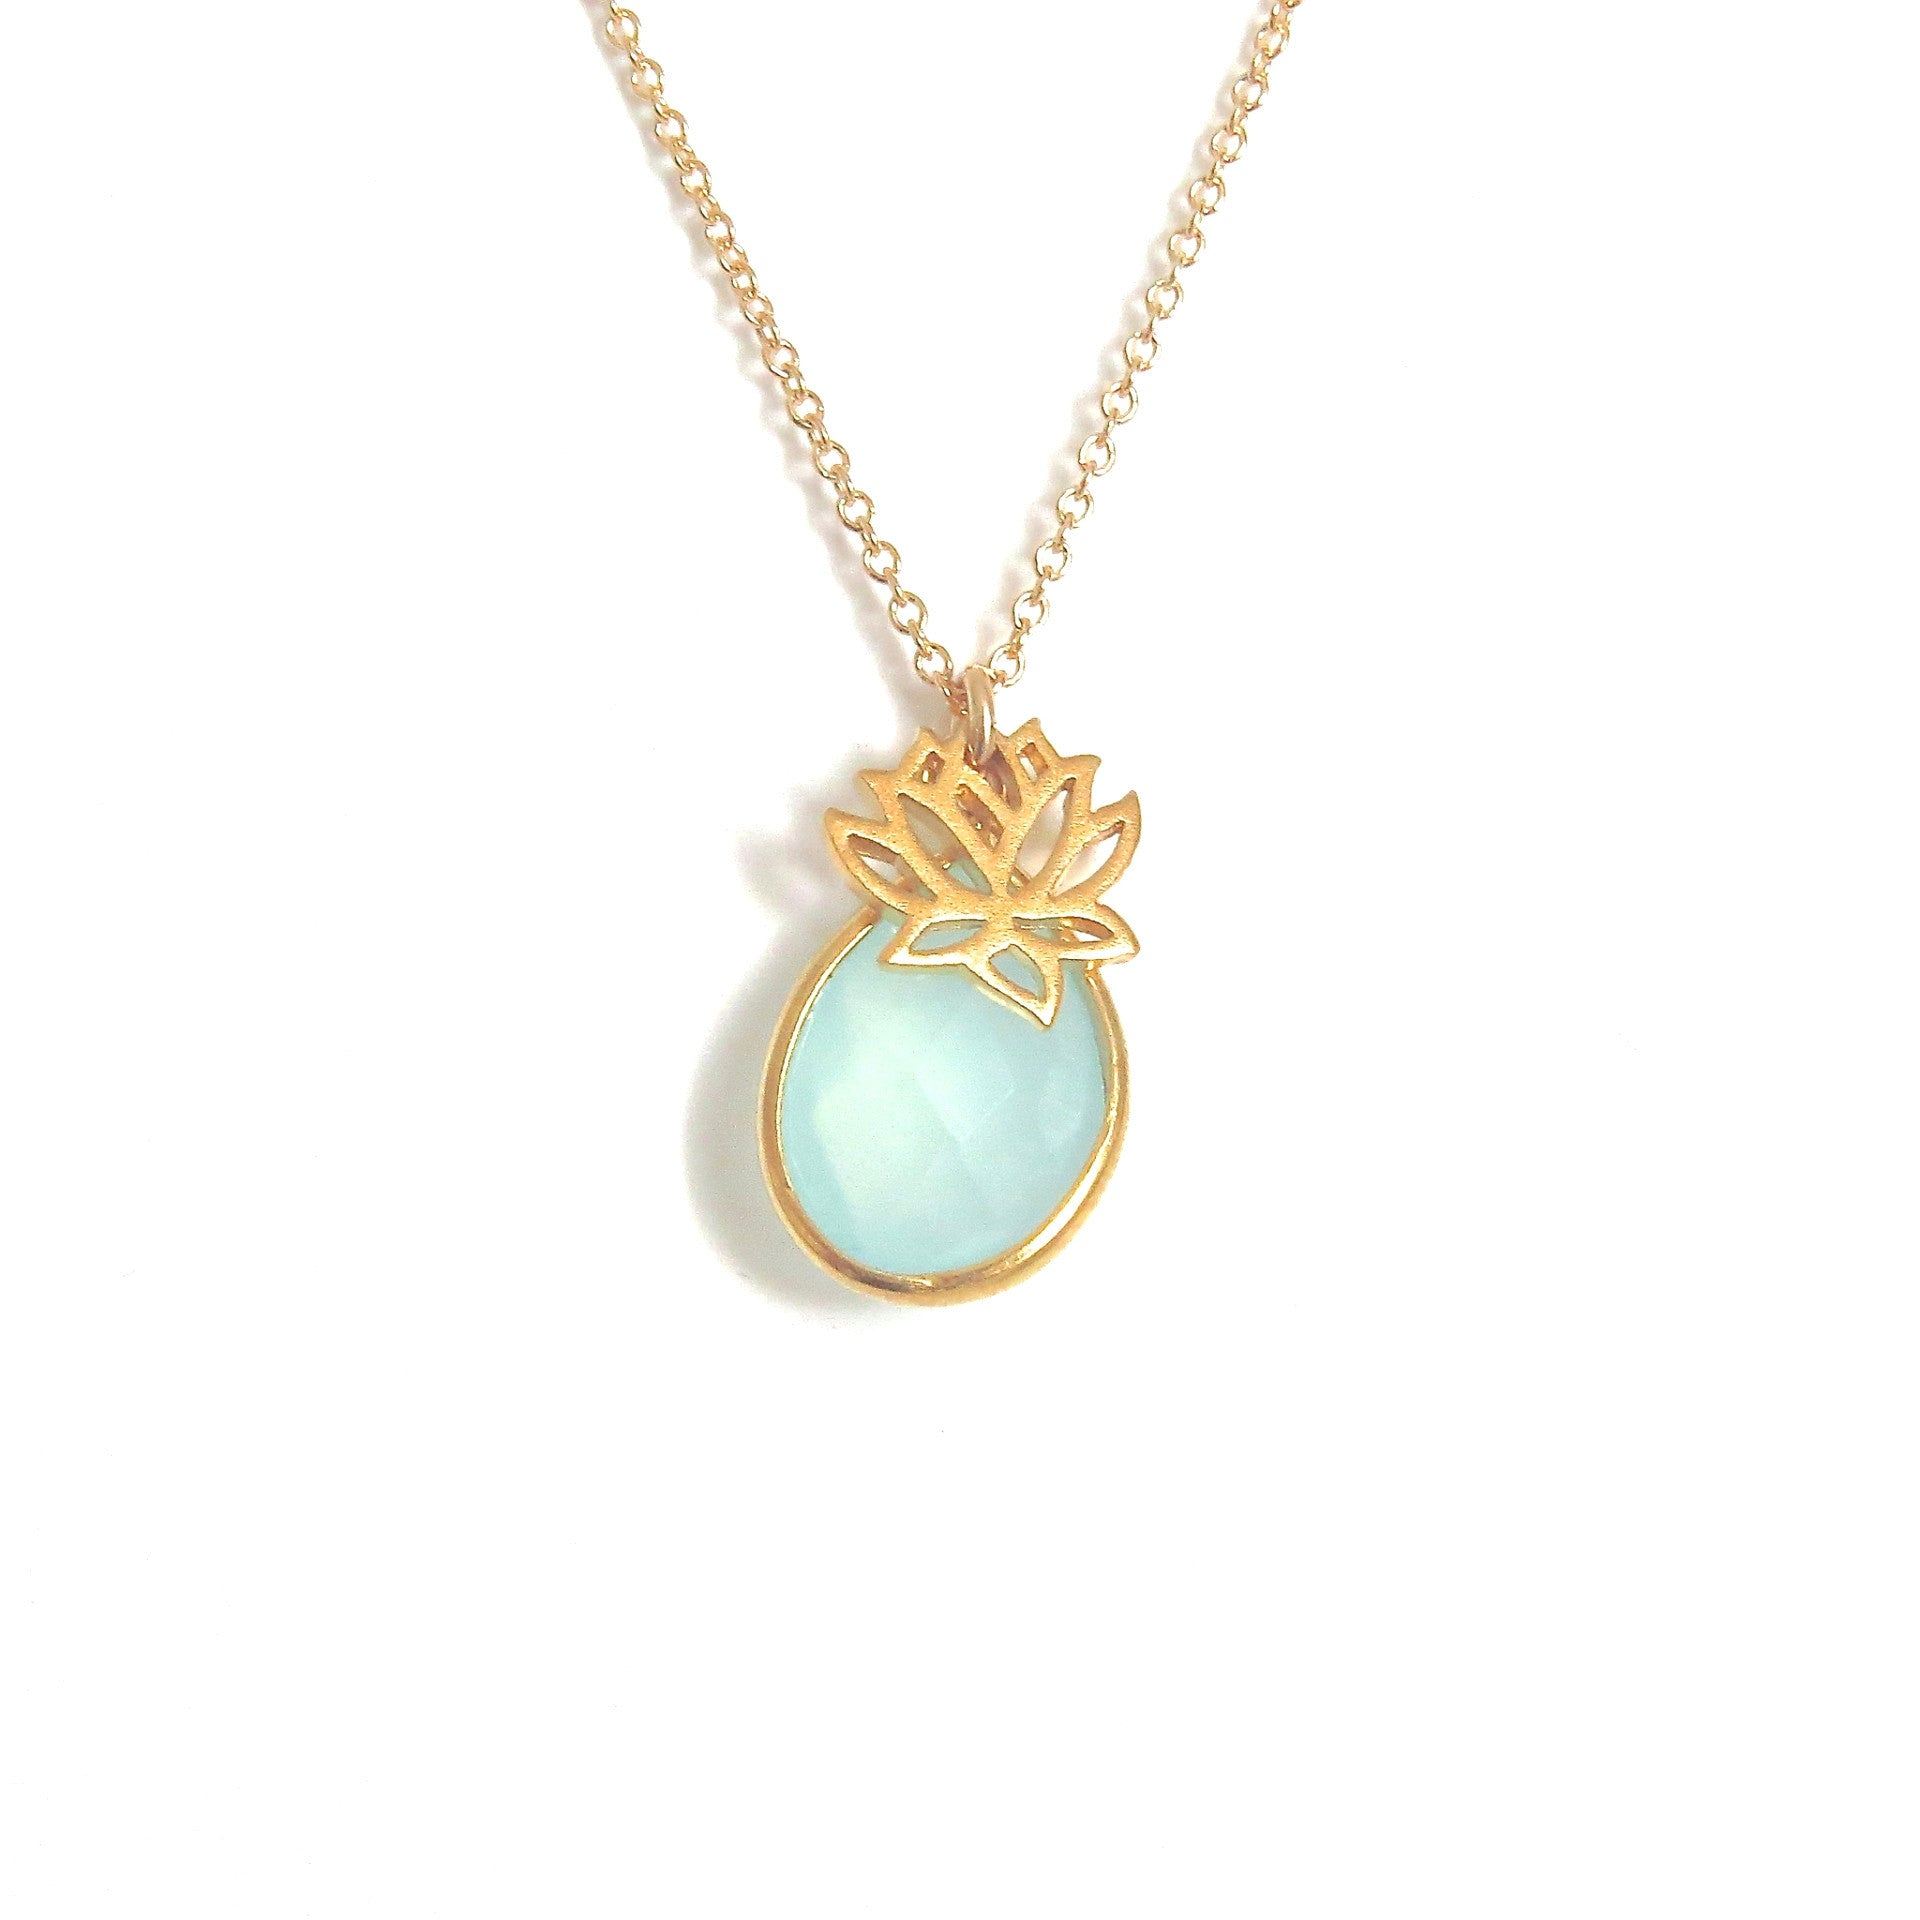 Lotus Flower Gold Necklace with Gemstone Accents - Tangerine ...